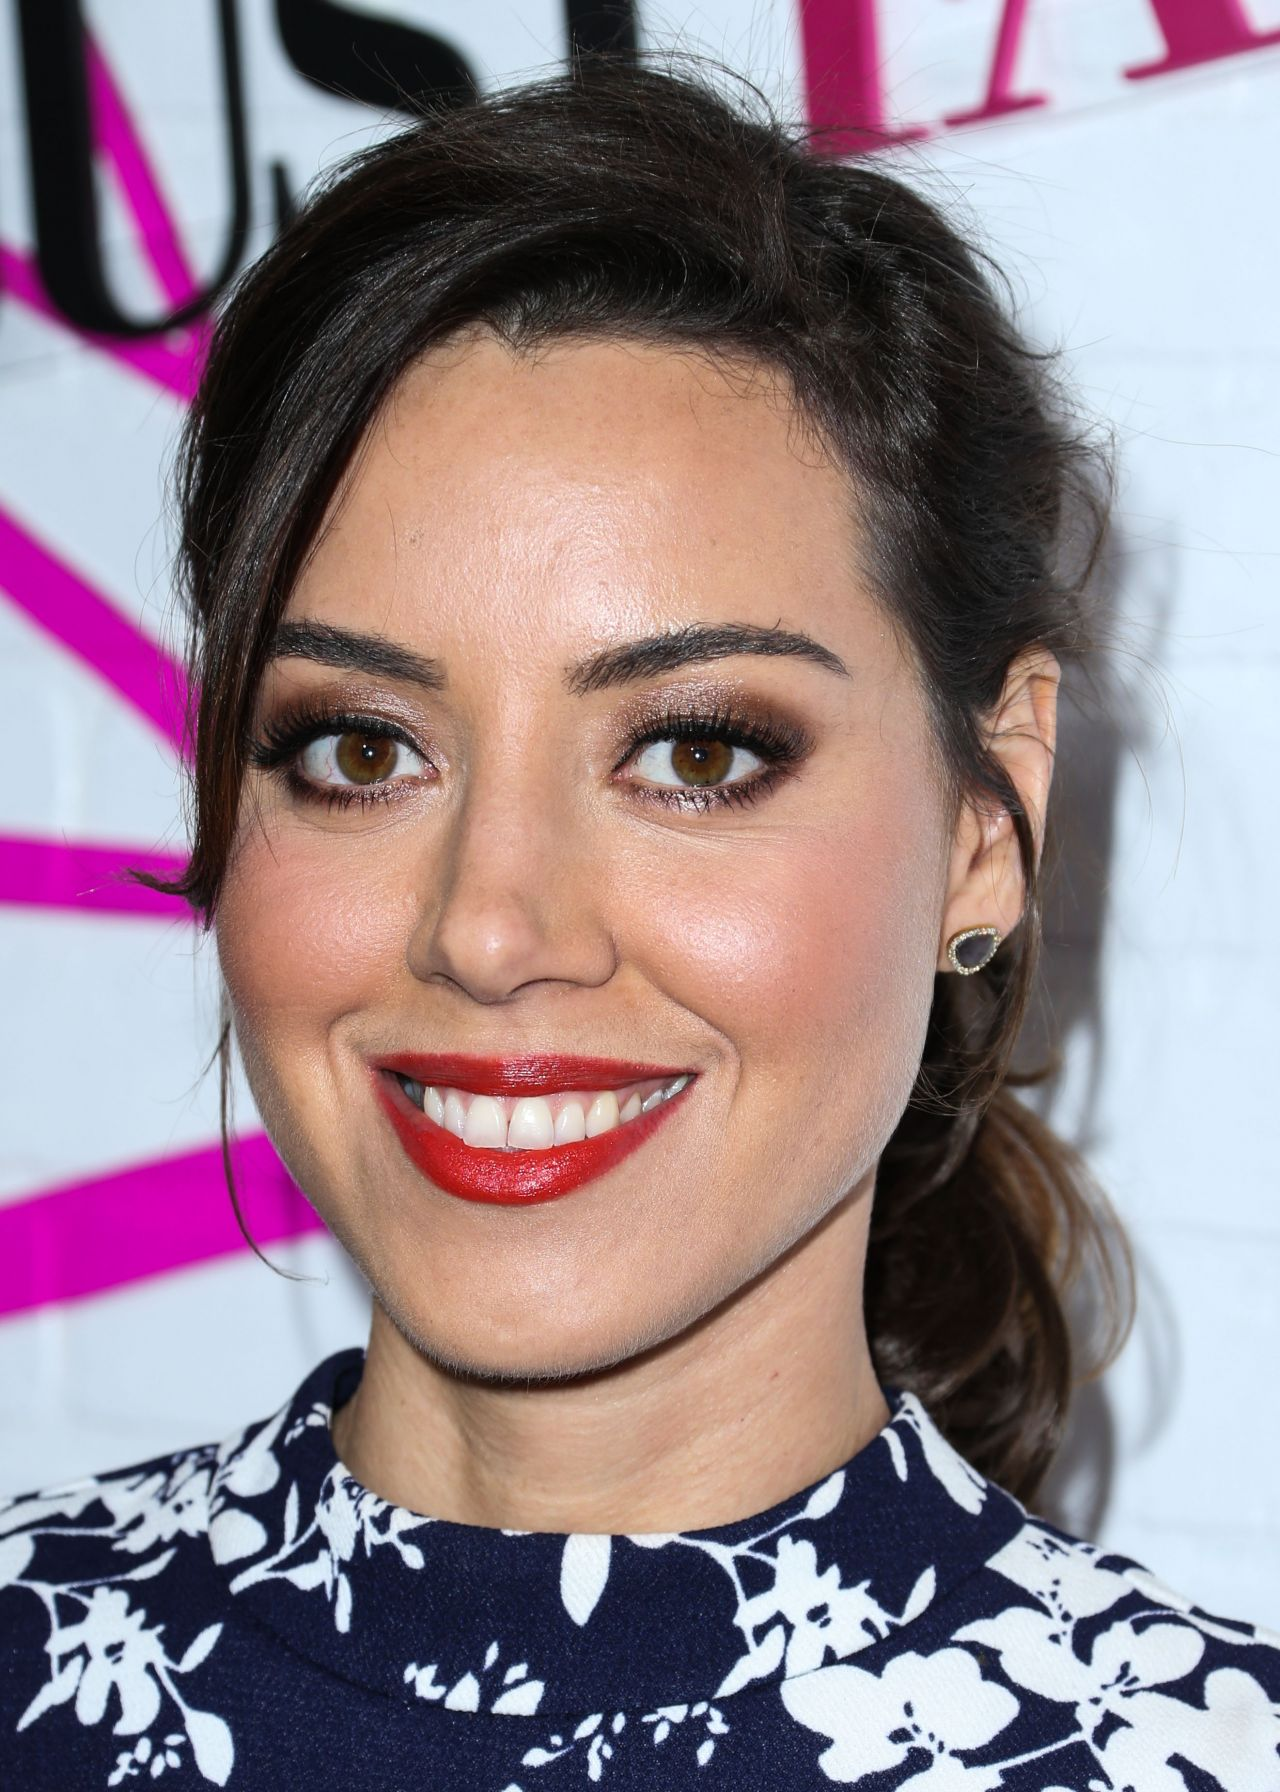 Aubrey Plaza Justfab Ready To Wear Launch Party In West